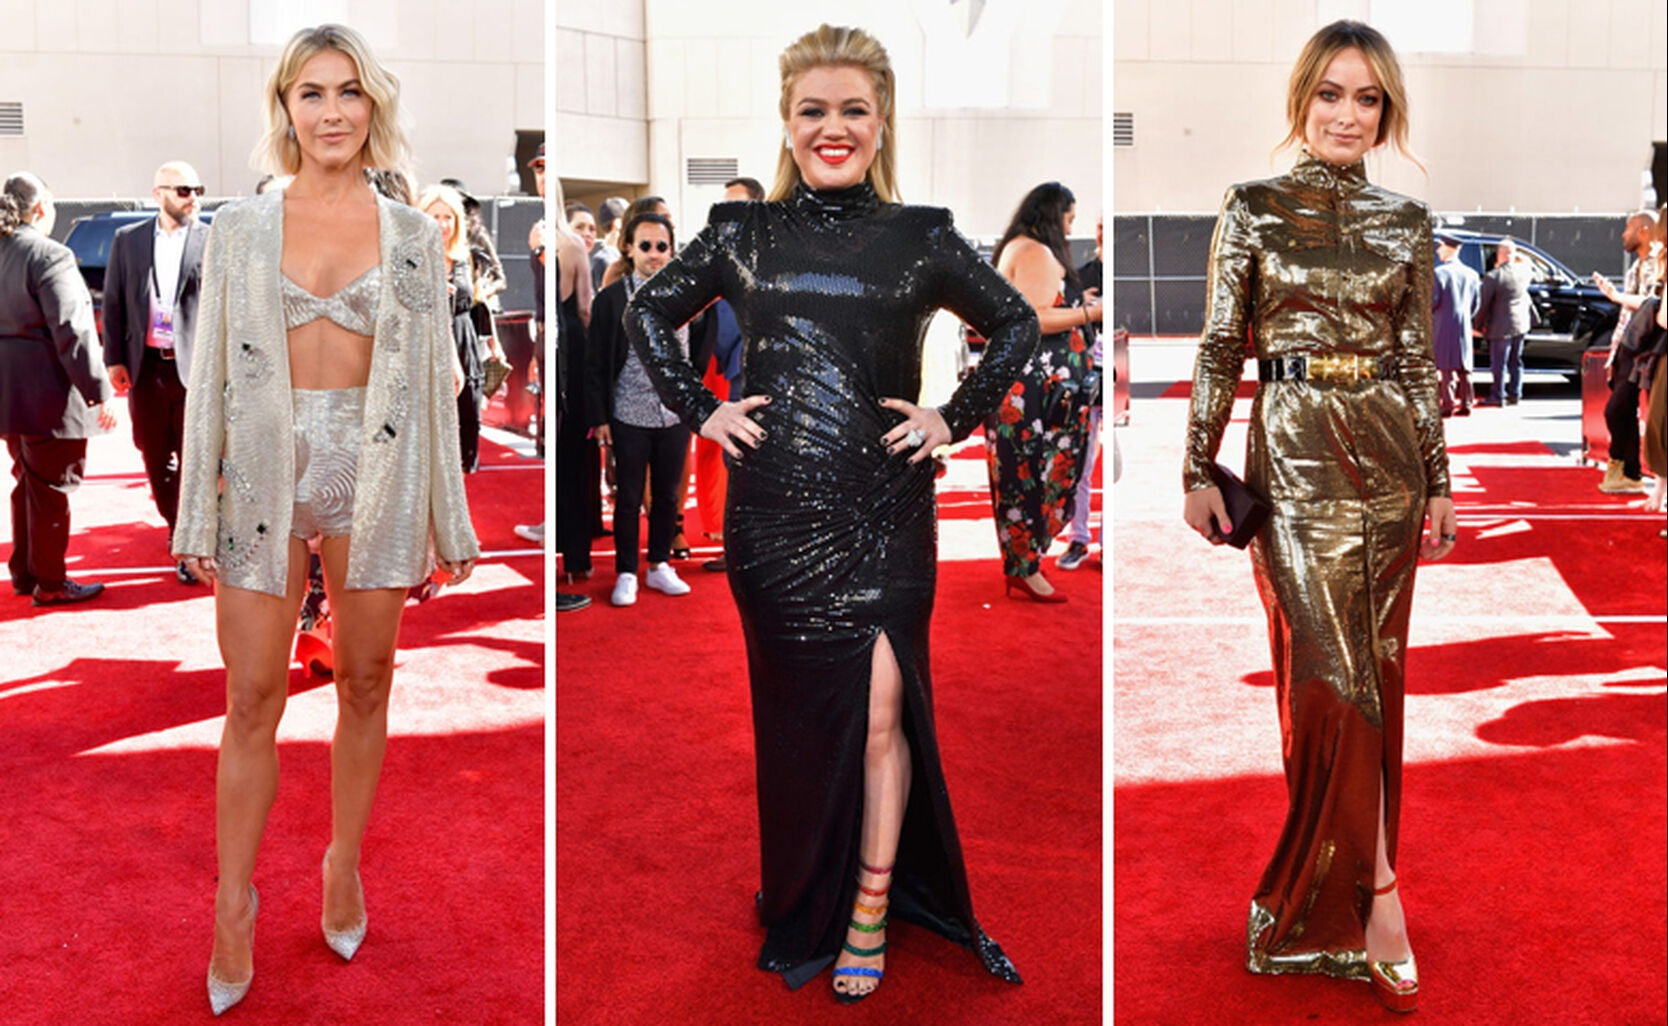 Julianne Hough, Kelly Clarkson, Olivia Wilde